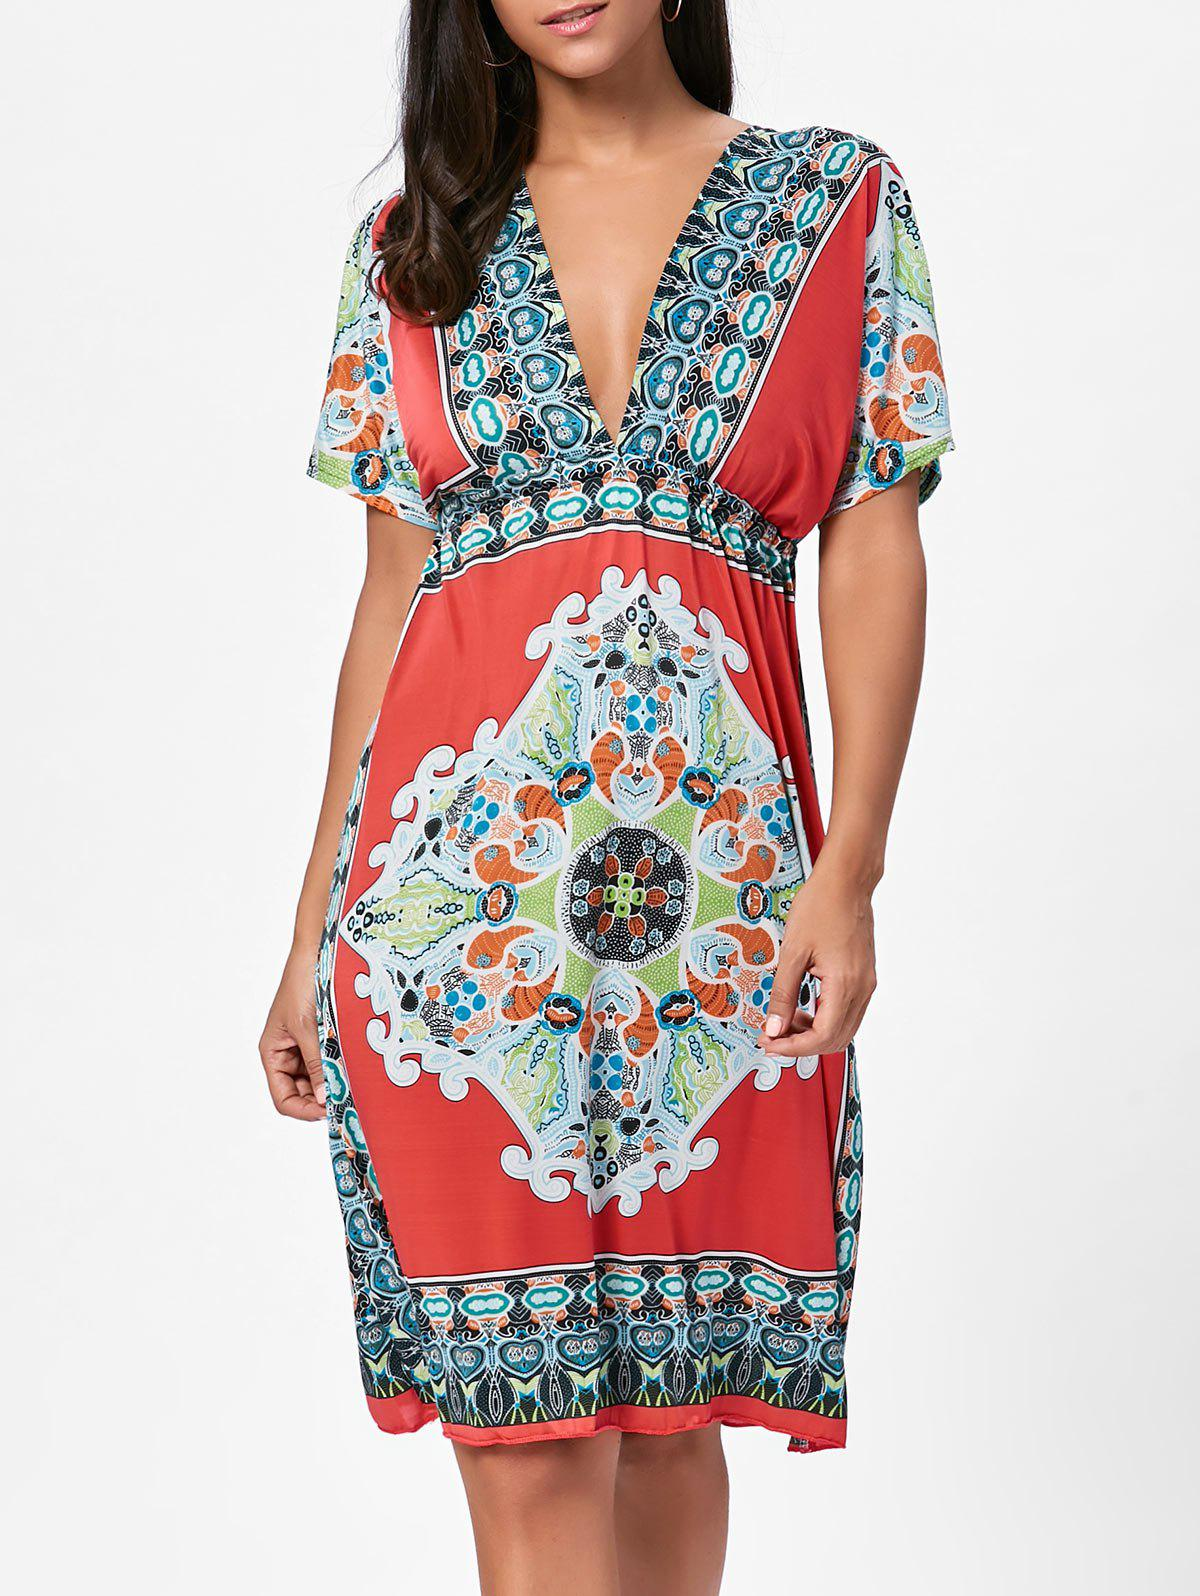 Aztec Print Plunge Backless Shift Dress - RED ONE SIZE